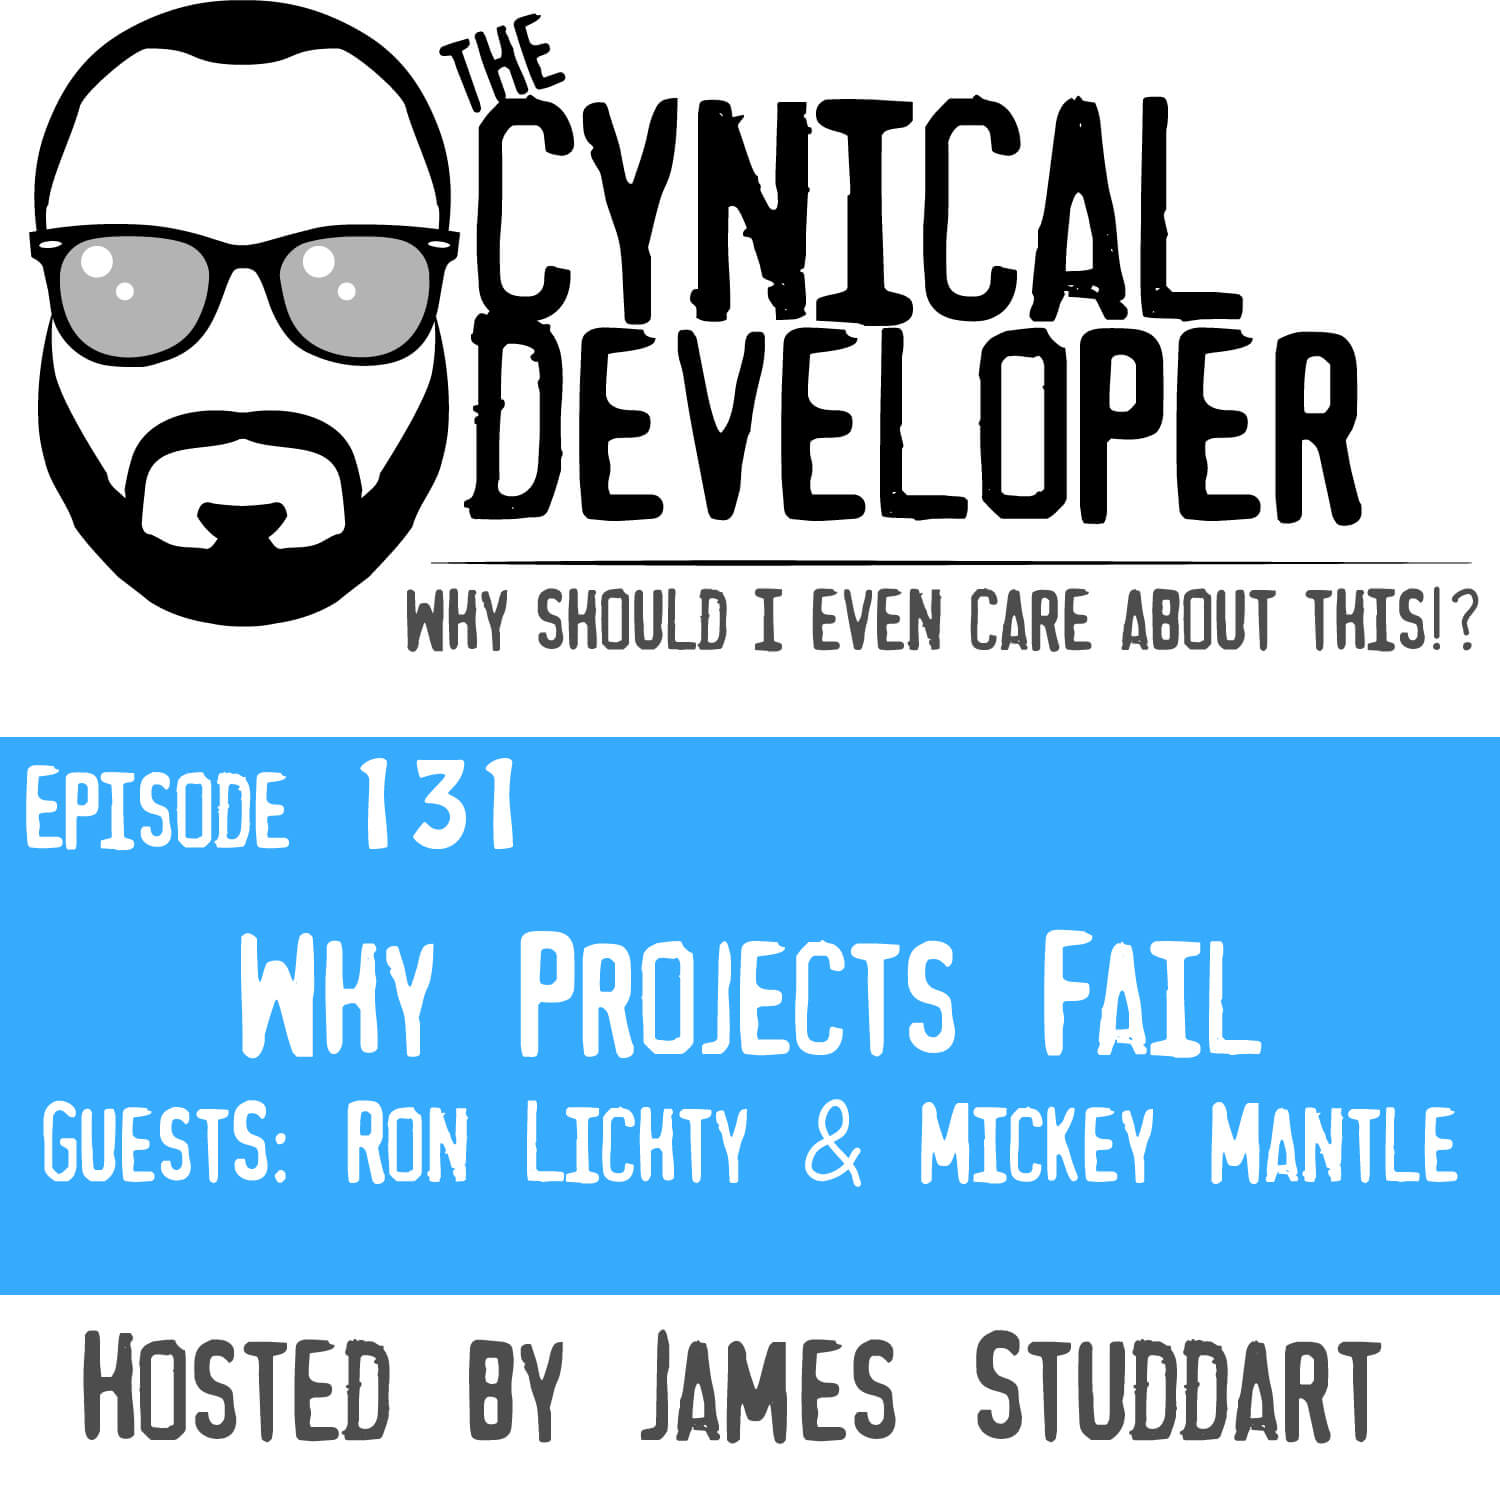 Episode 131 - Why Projects Fail